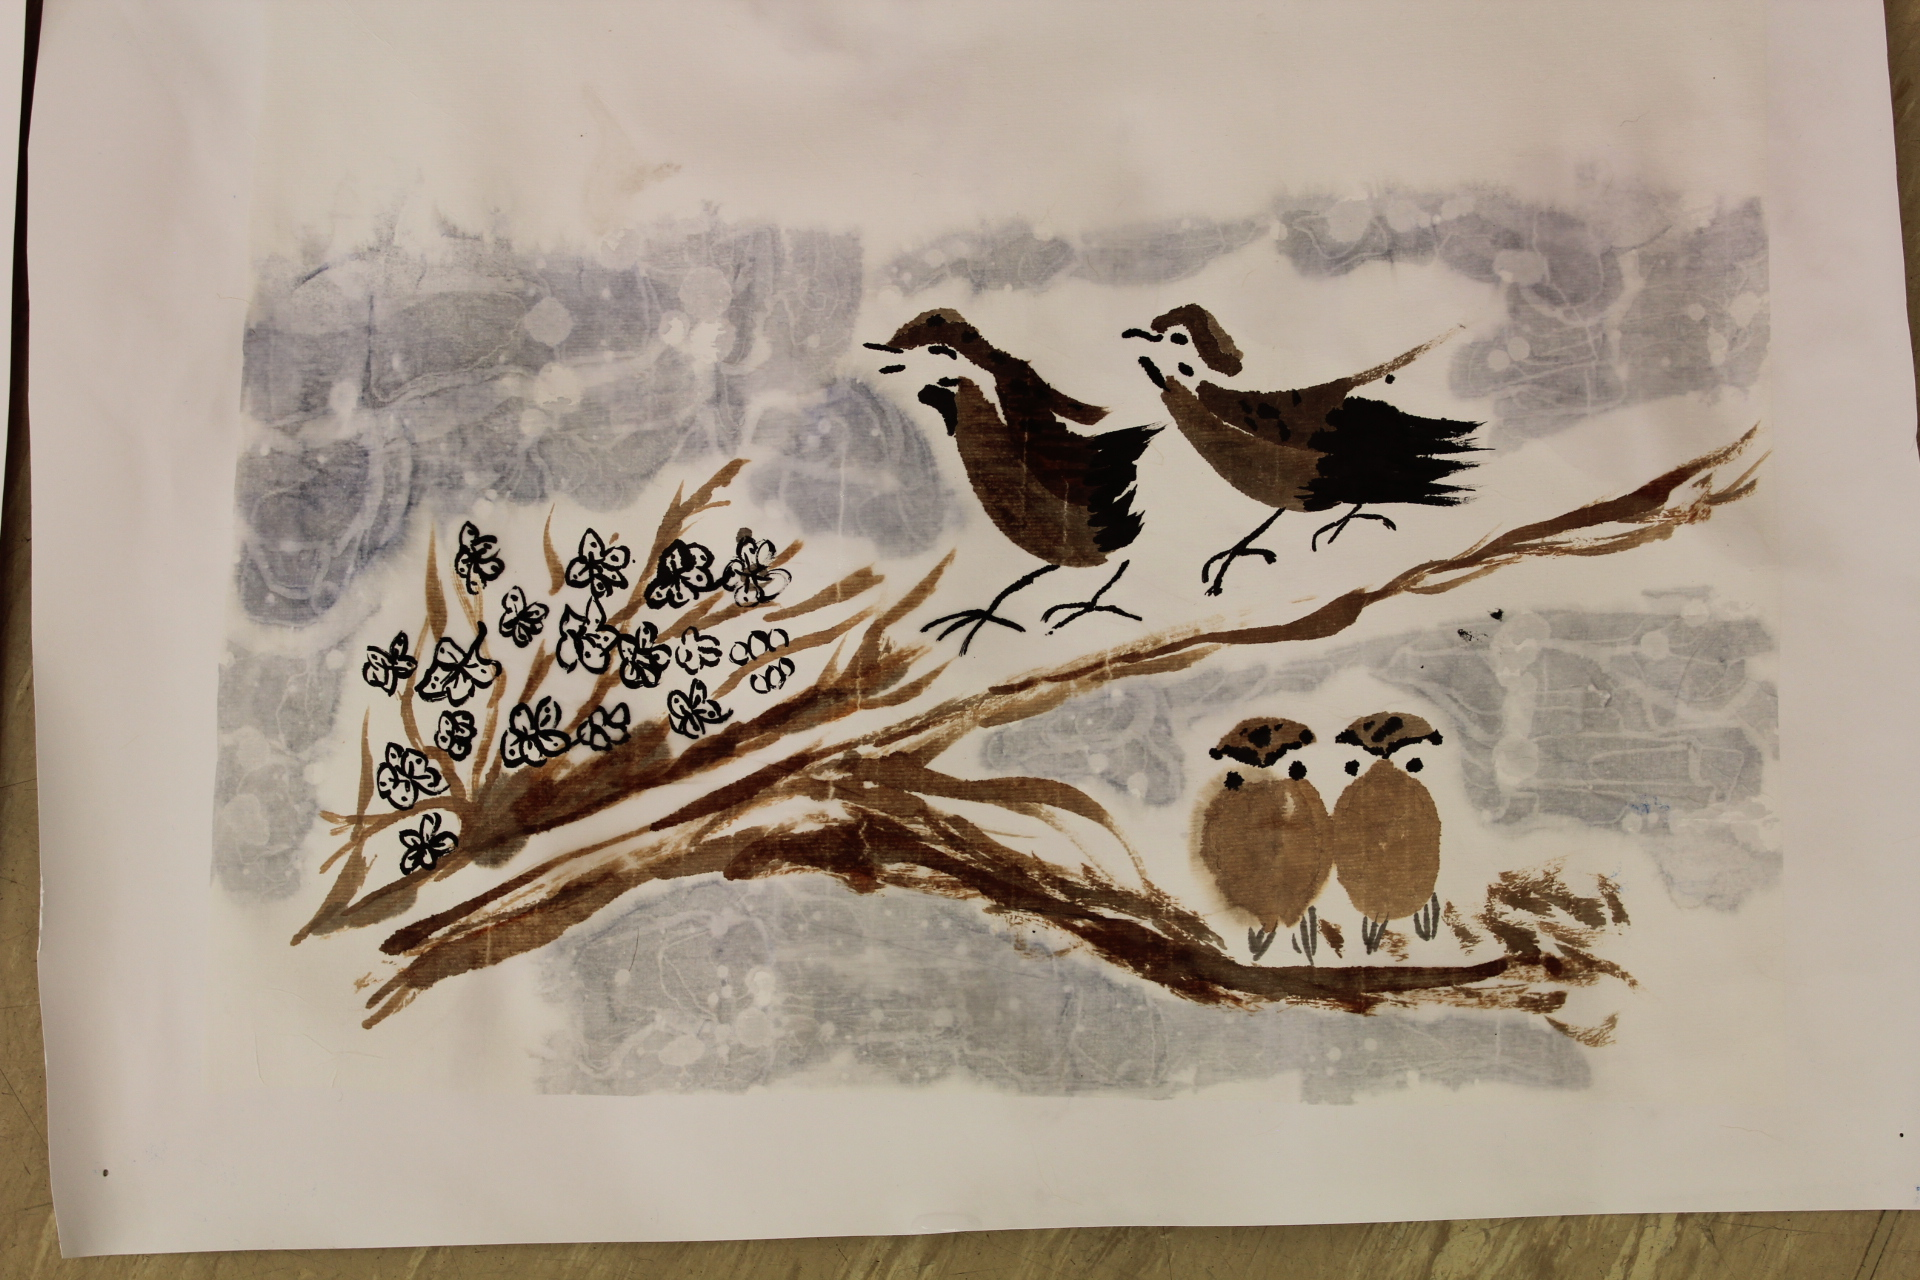 Chinese Brush Painting: Flowers and Birds in Winter : Jean Turton